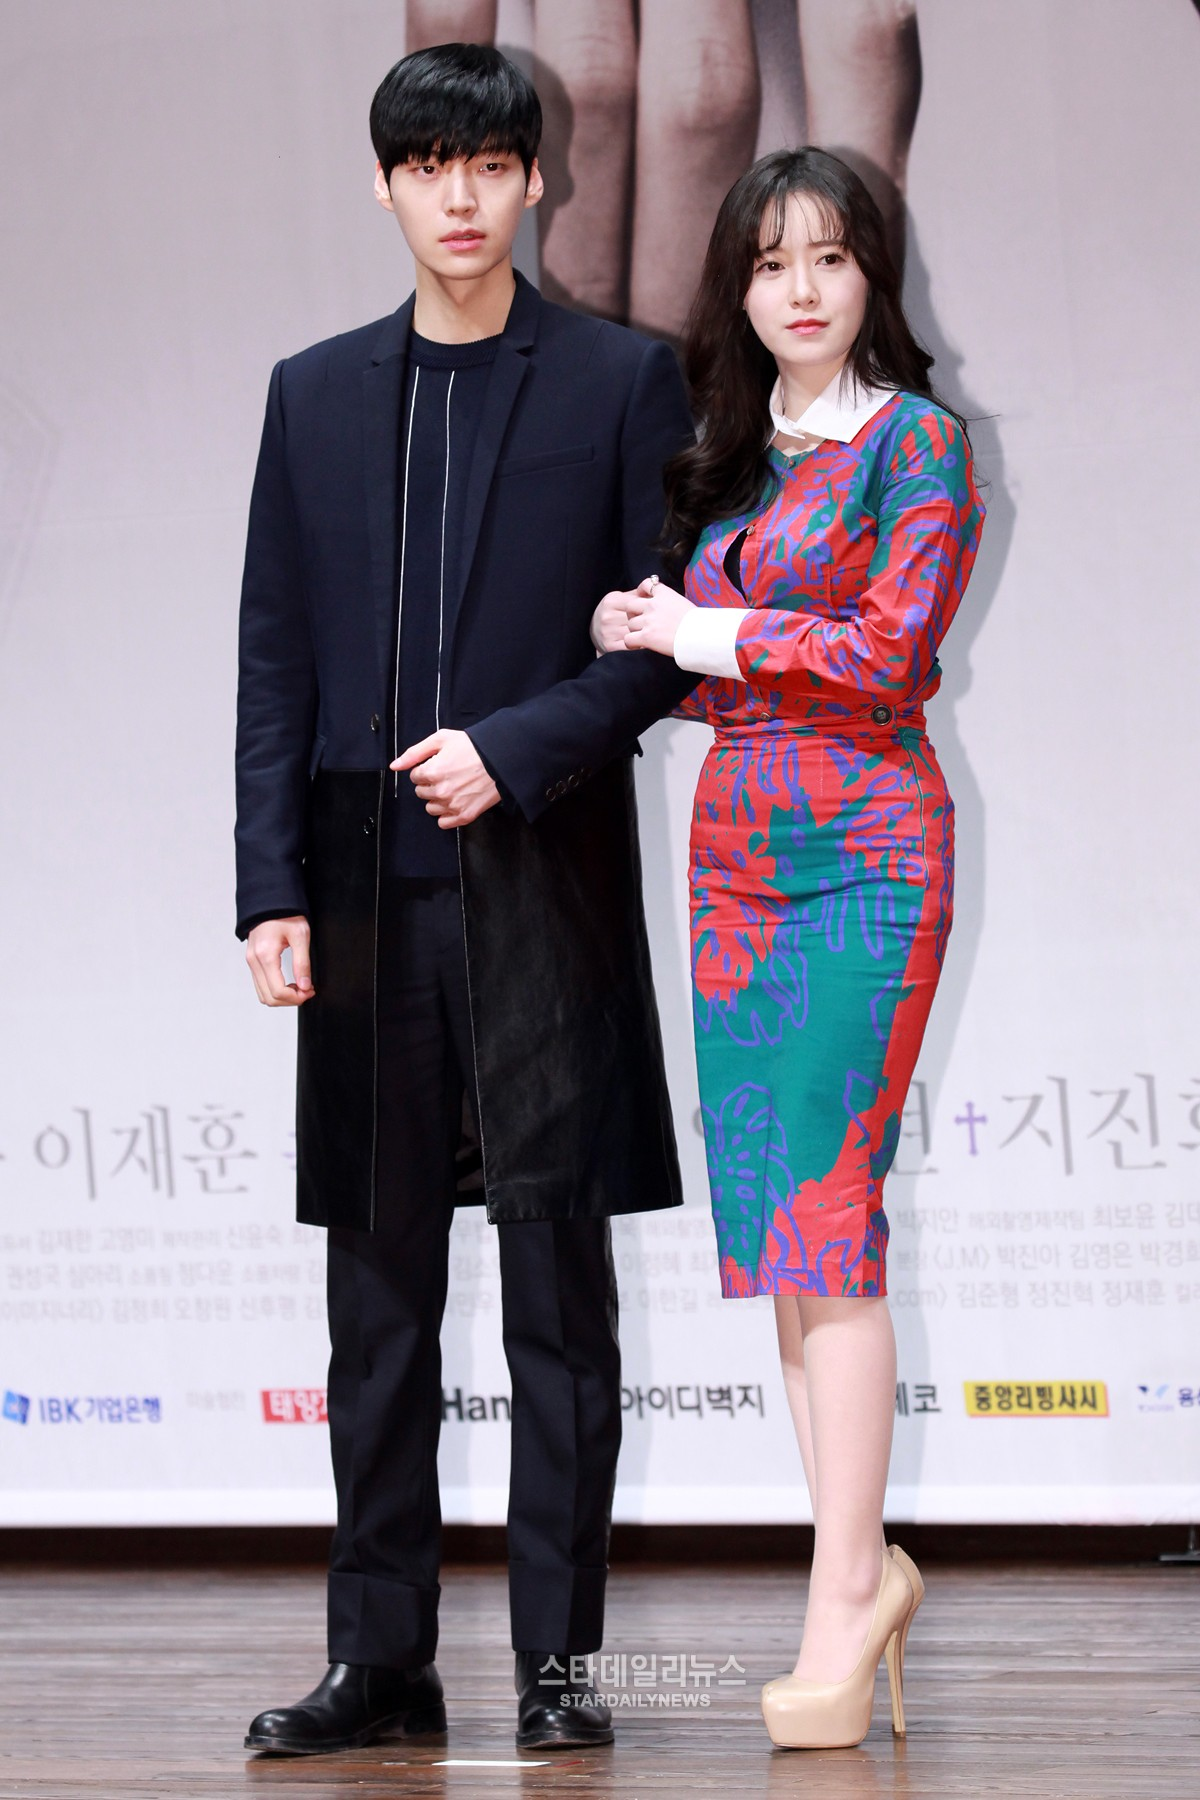 """Blood"" Co-Stars Ahn Jae Hyun and Ku Hye Sun Reportedly Dating, Reps Respond"